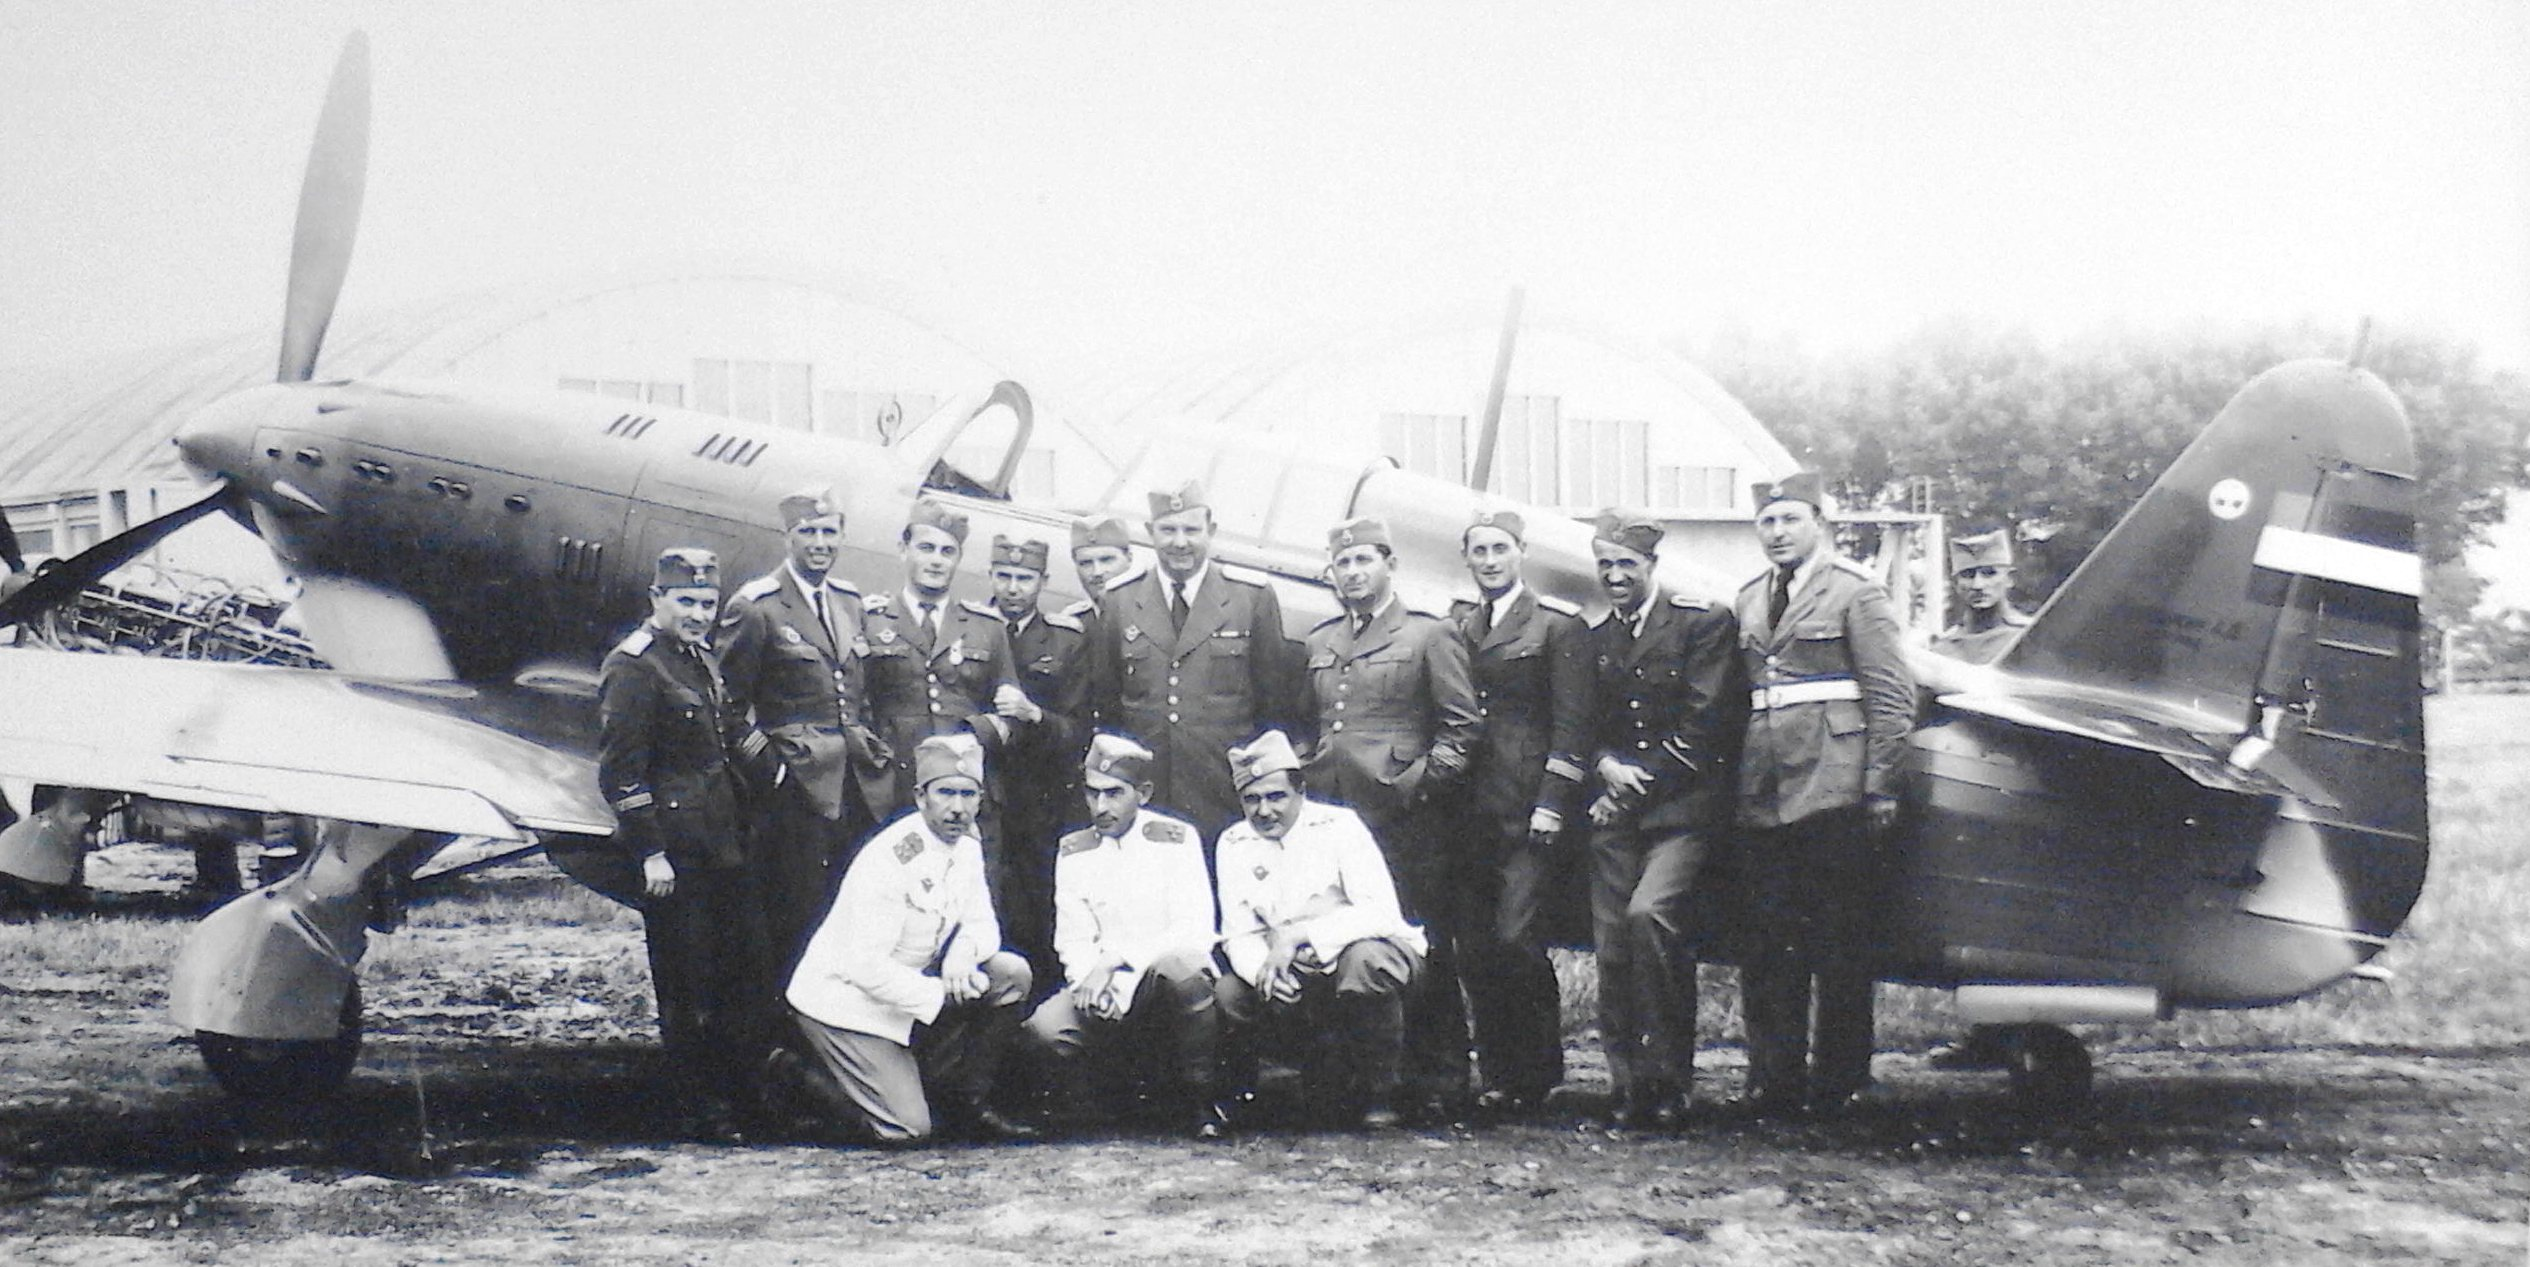 IK-3 51st Independant Fighter Group, Belgrade-Zemoun, April 1941